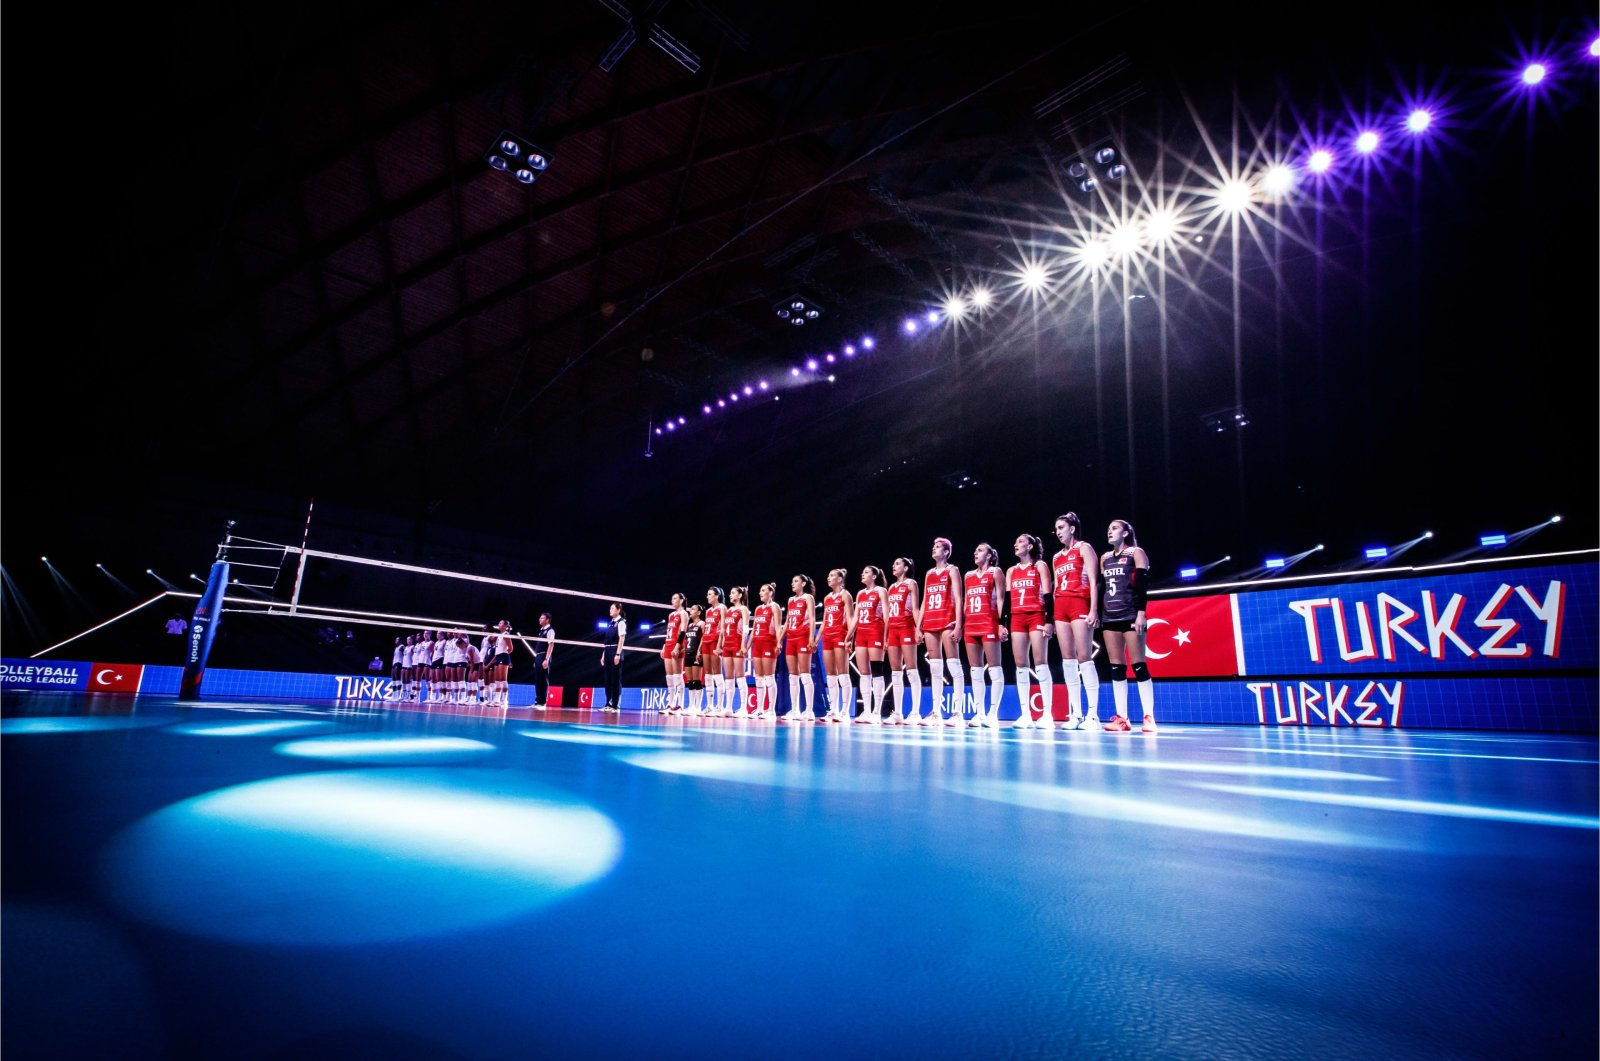 Turkish Women's National Volleyball team stand during the ceremony before the Volleyball Nations League semifinal match against the United States in Italy's Rimini, June 24, 2021 (IHA Photo)